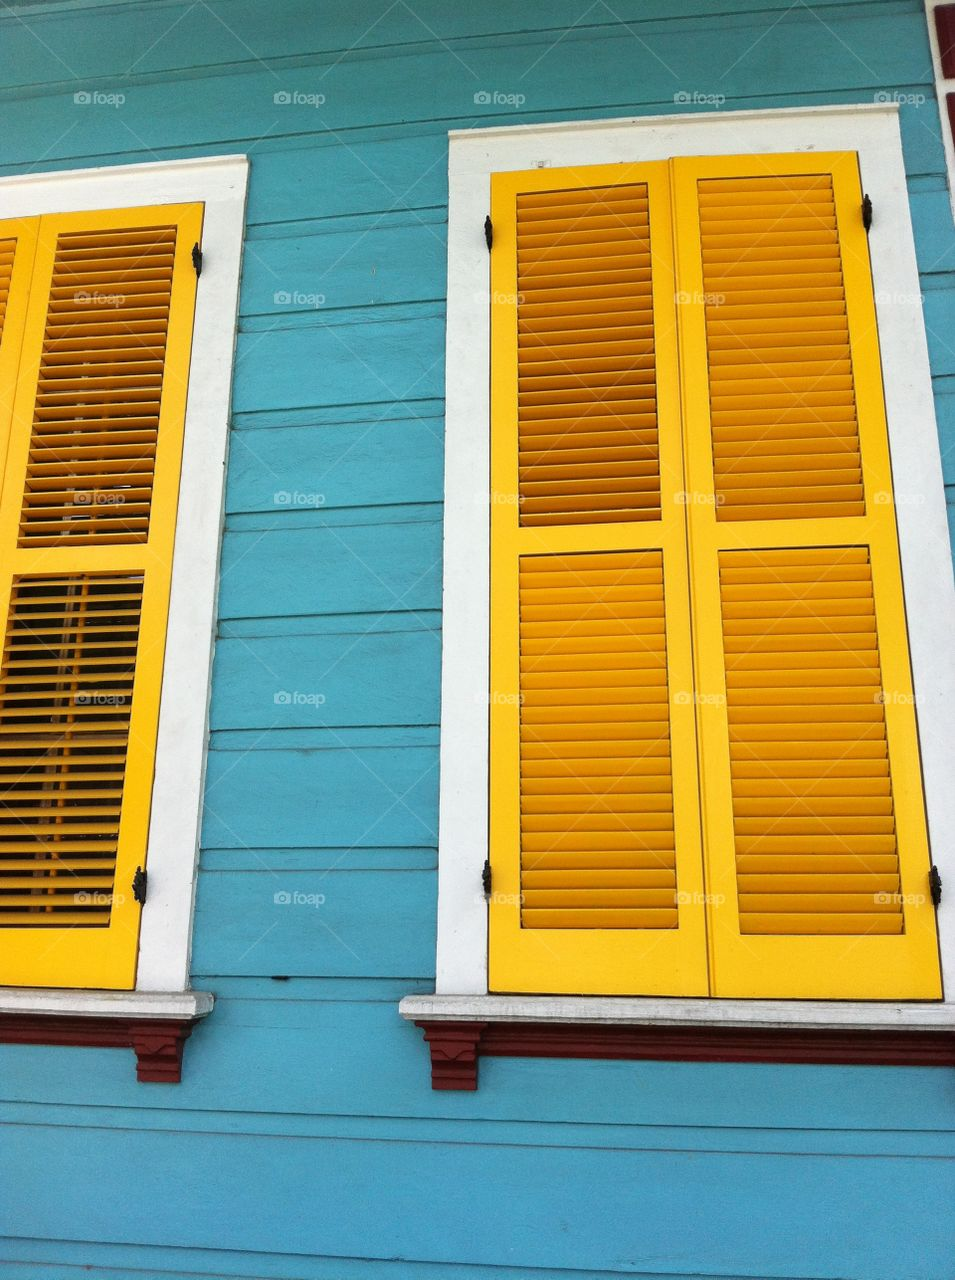 New Orleans. Yellow shutters on a blue house in New Orleans, Louisiana.